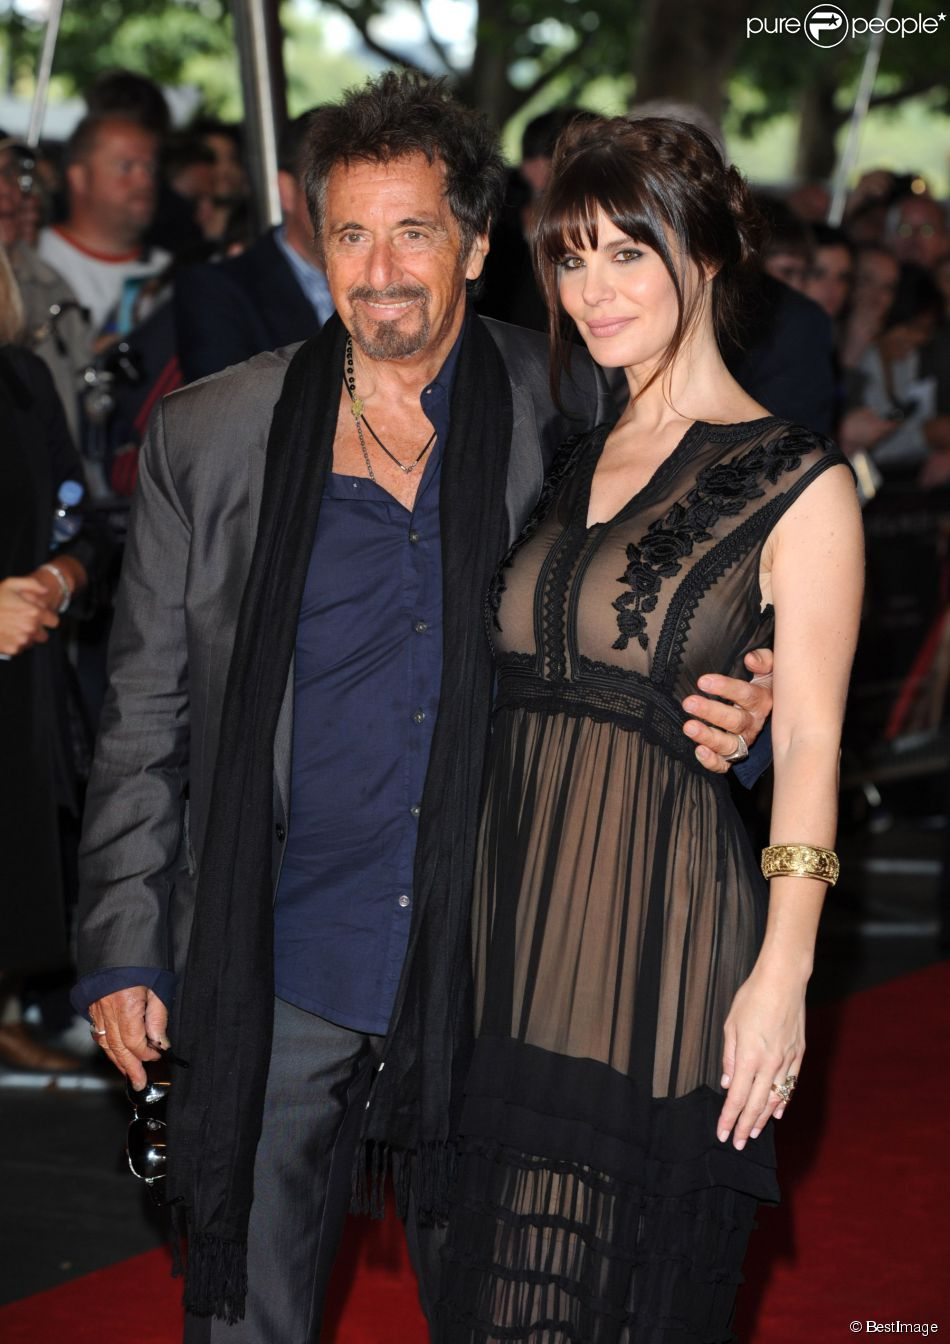 who is al pacino currently dating